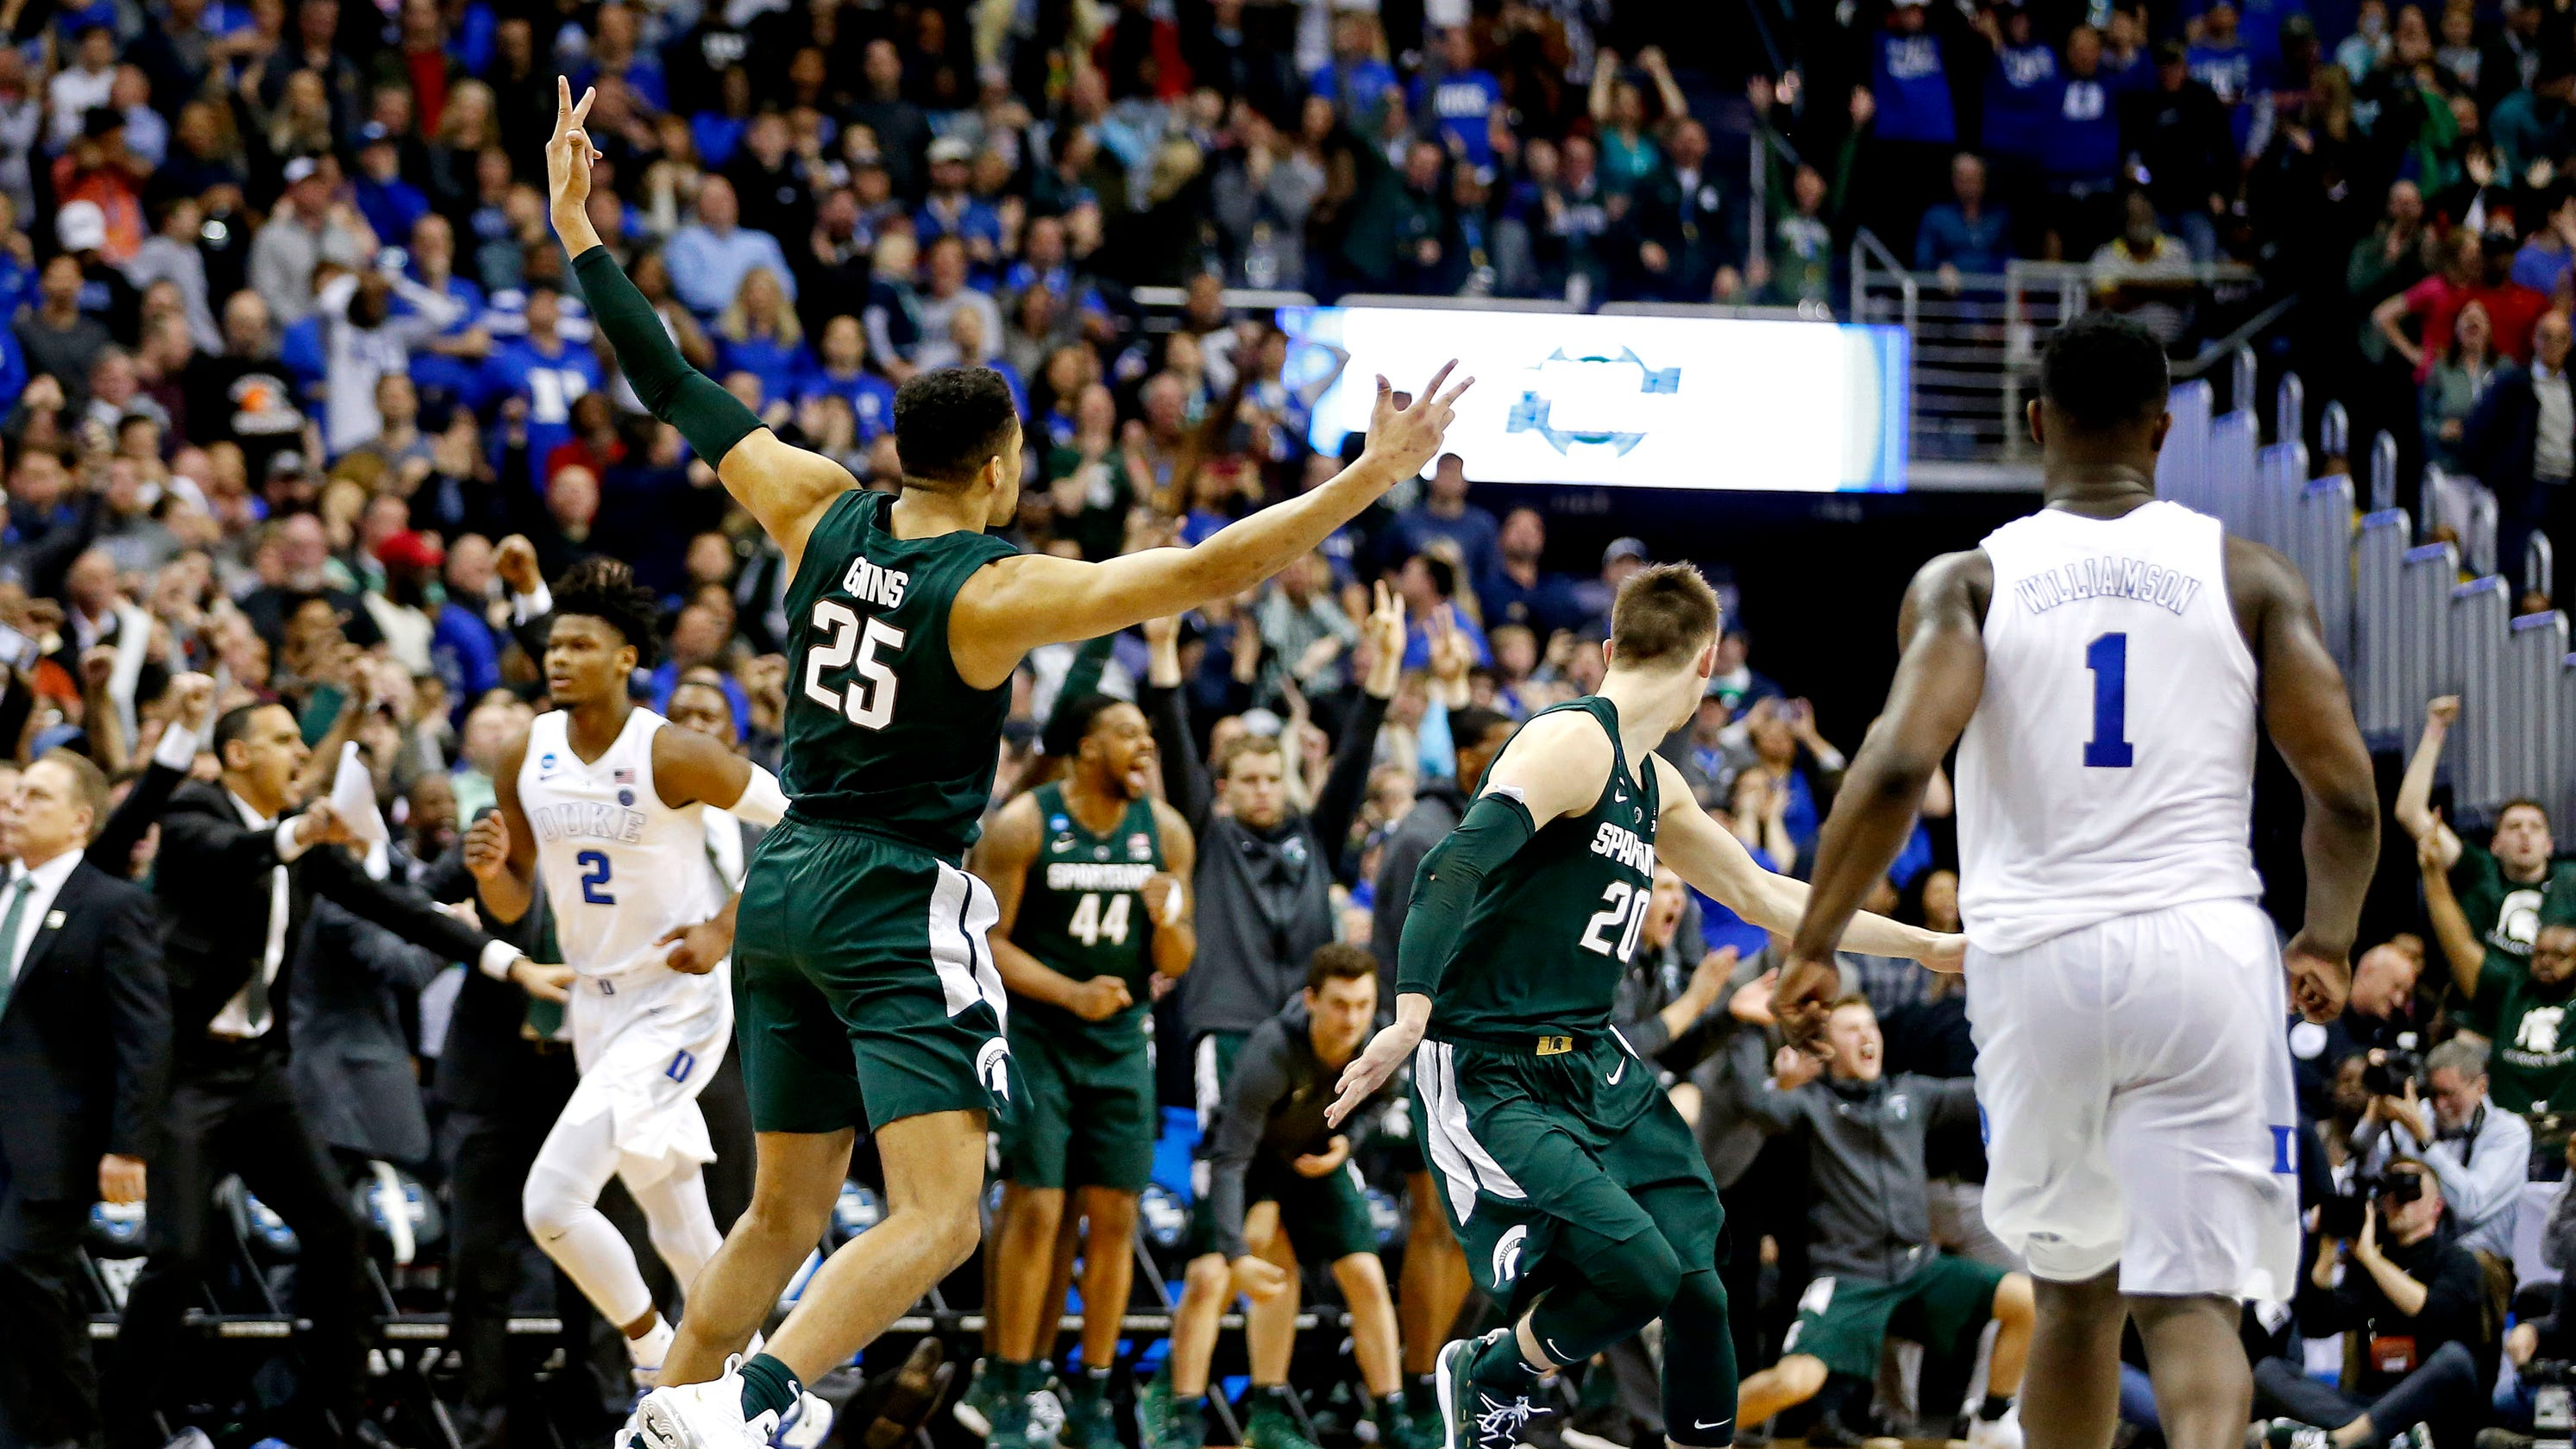 Opinion: Tom Izzo drew up play of his life. Then Michigan State stunned Duke in tournament